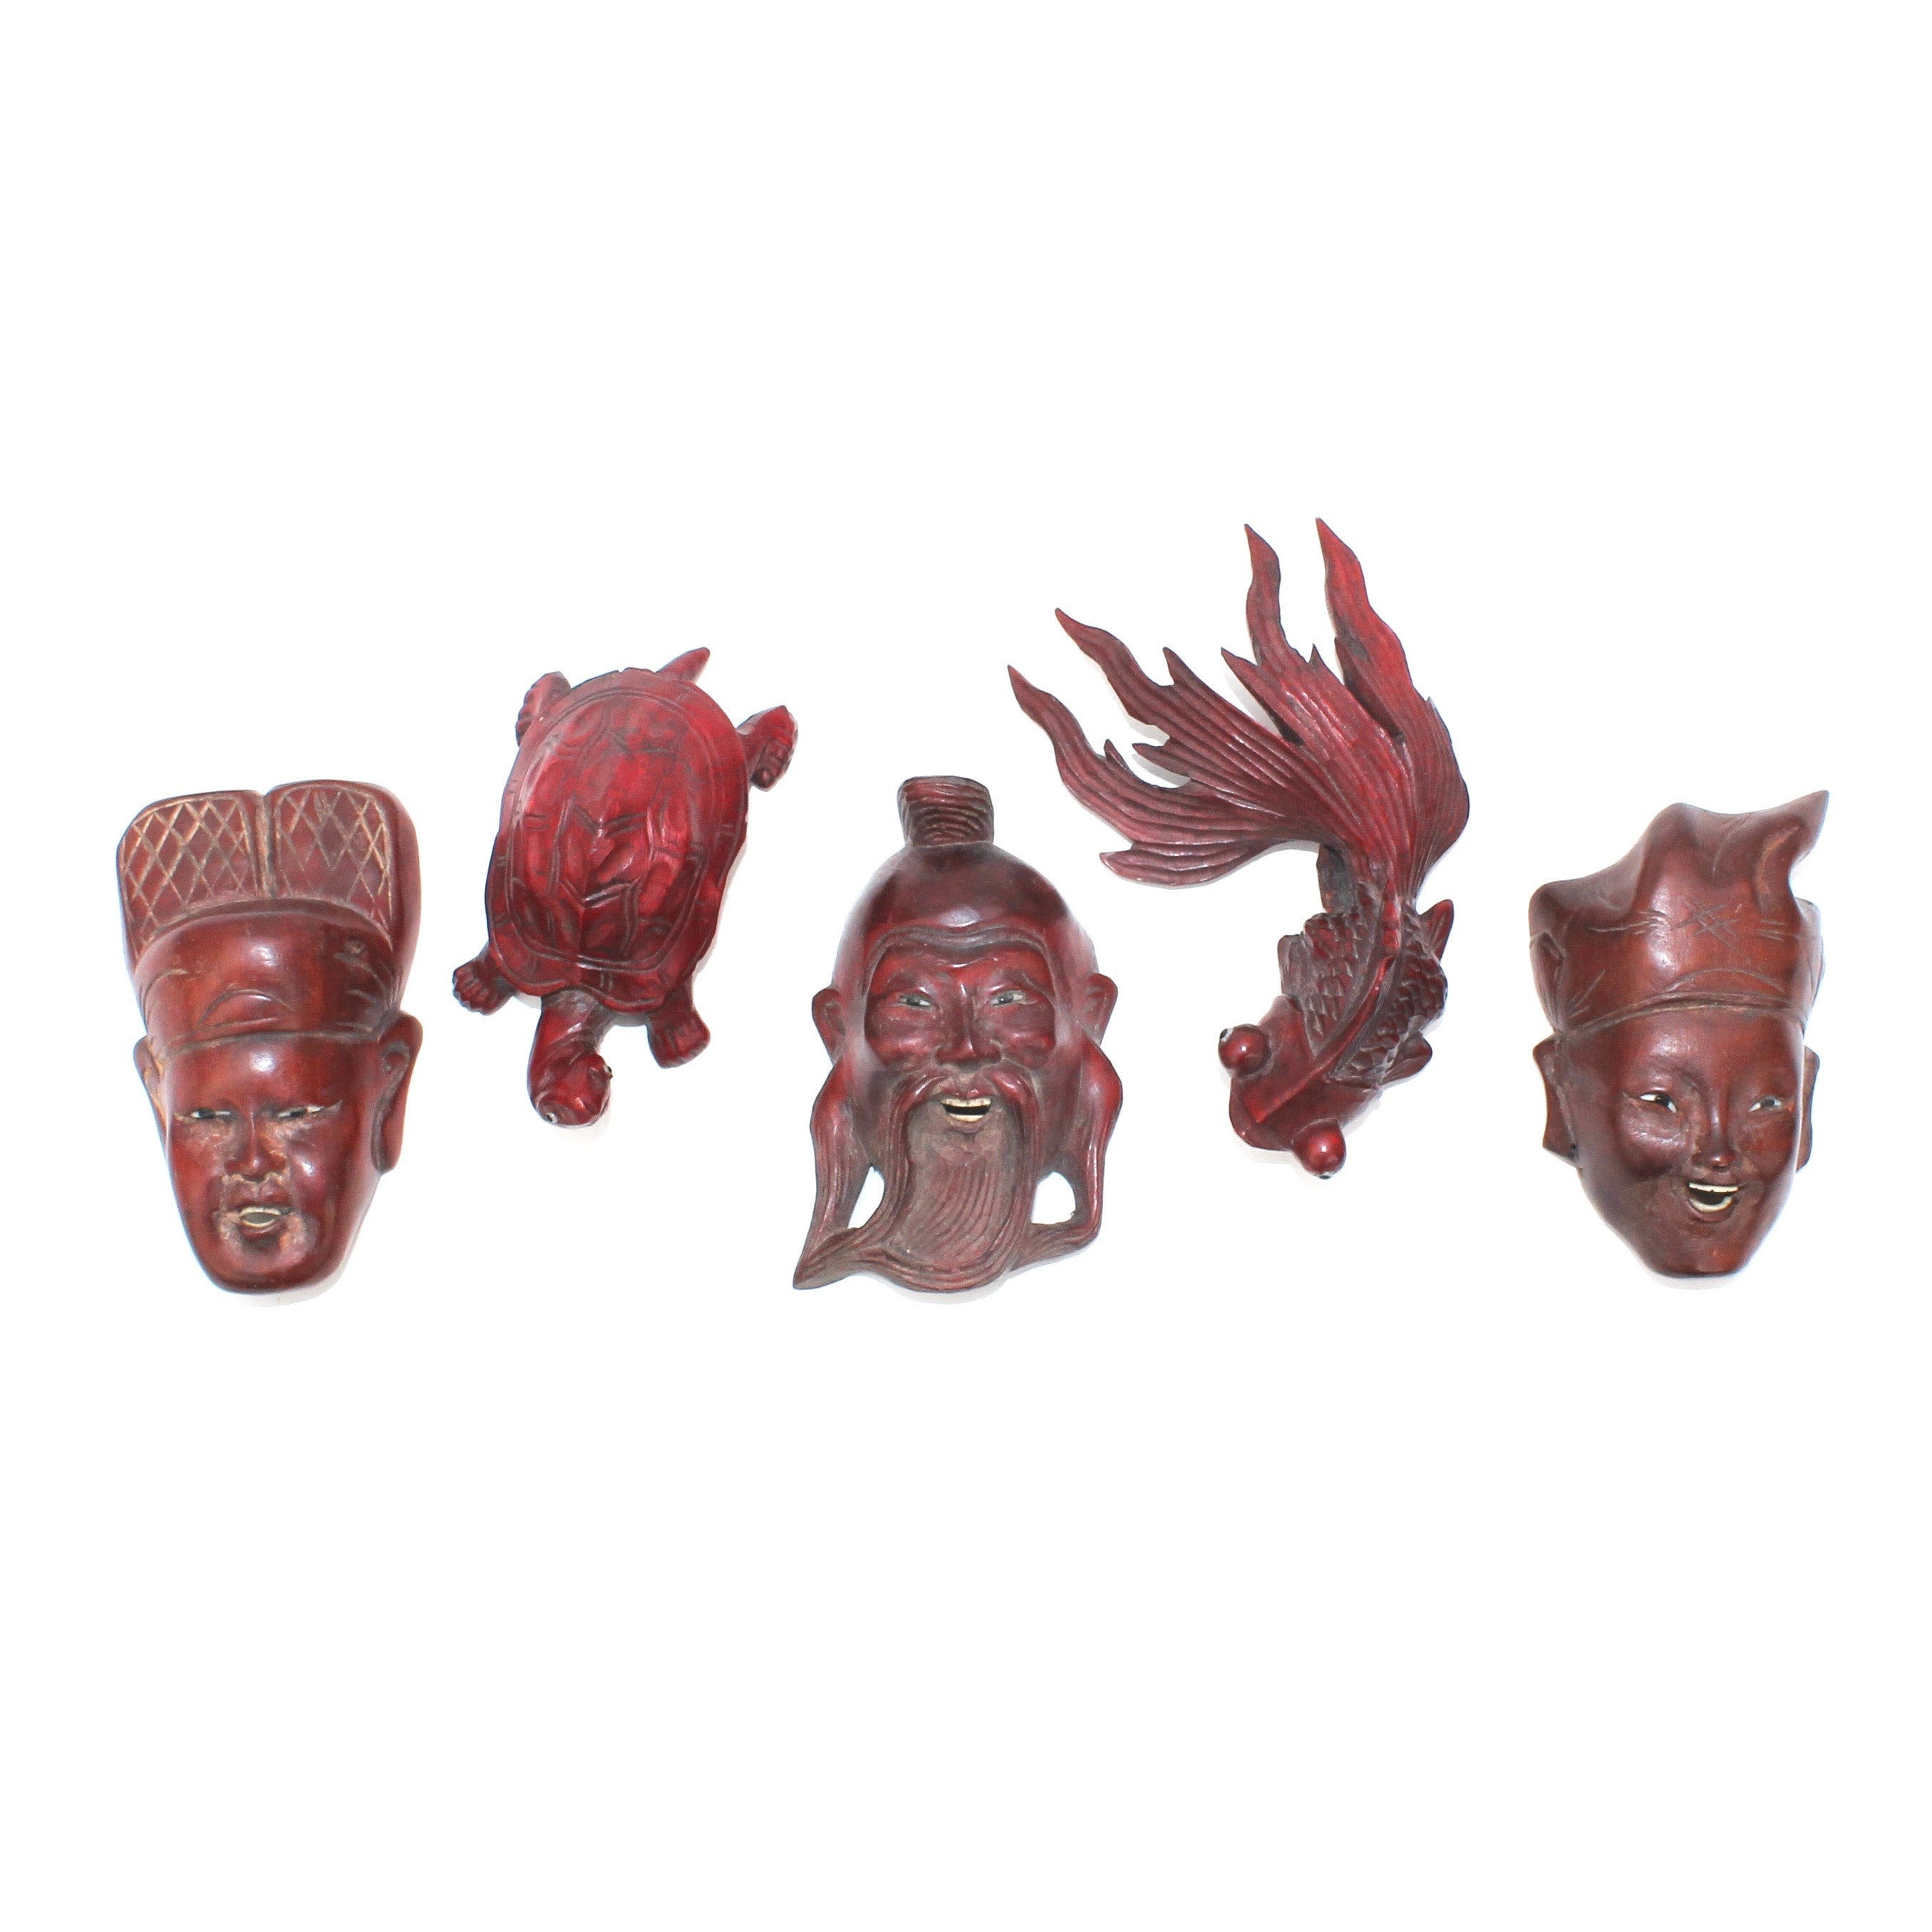 Miniature Chinese Rosewood Carved Masks and Animals